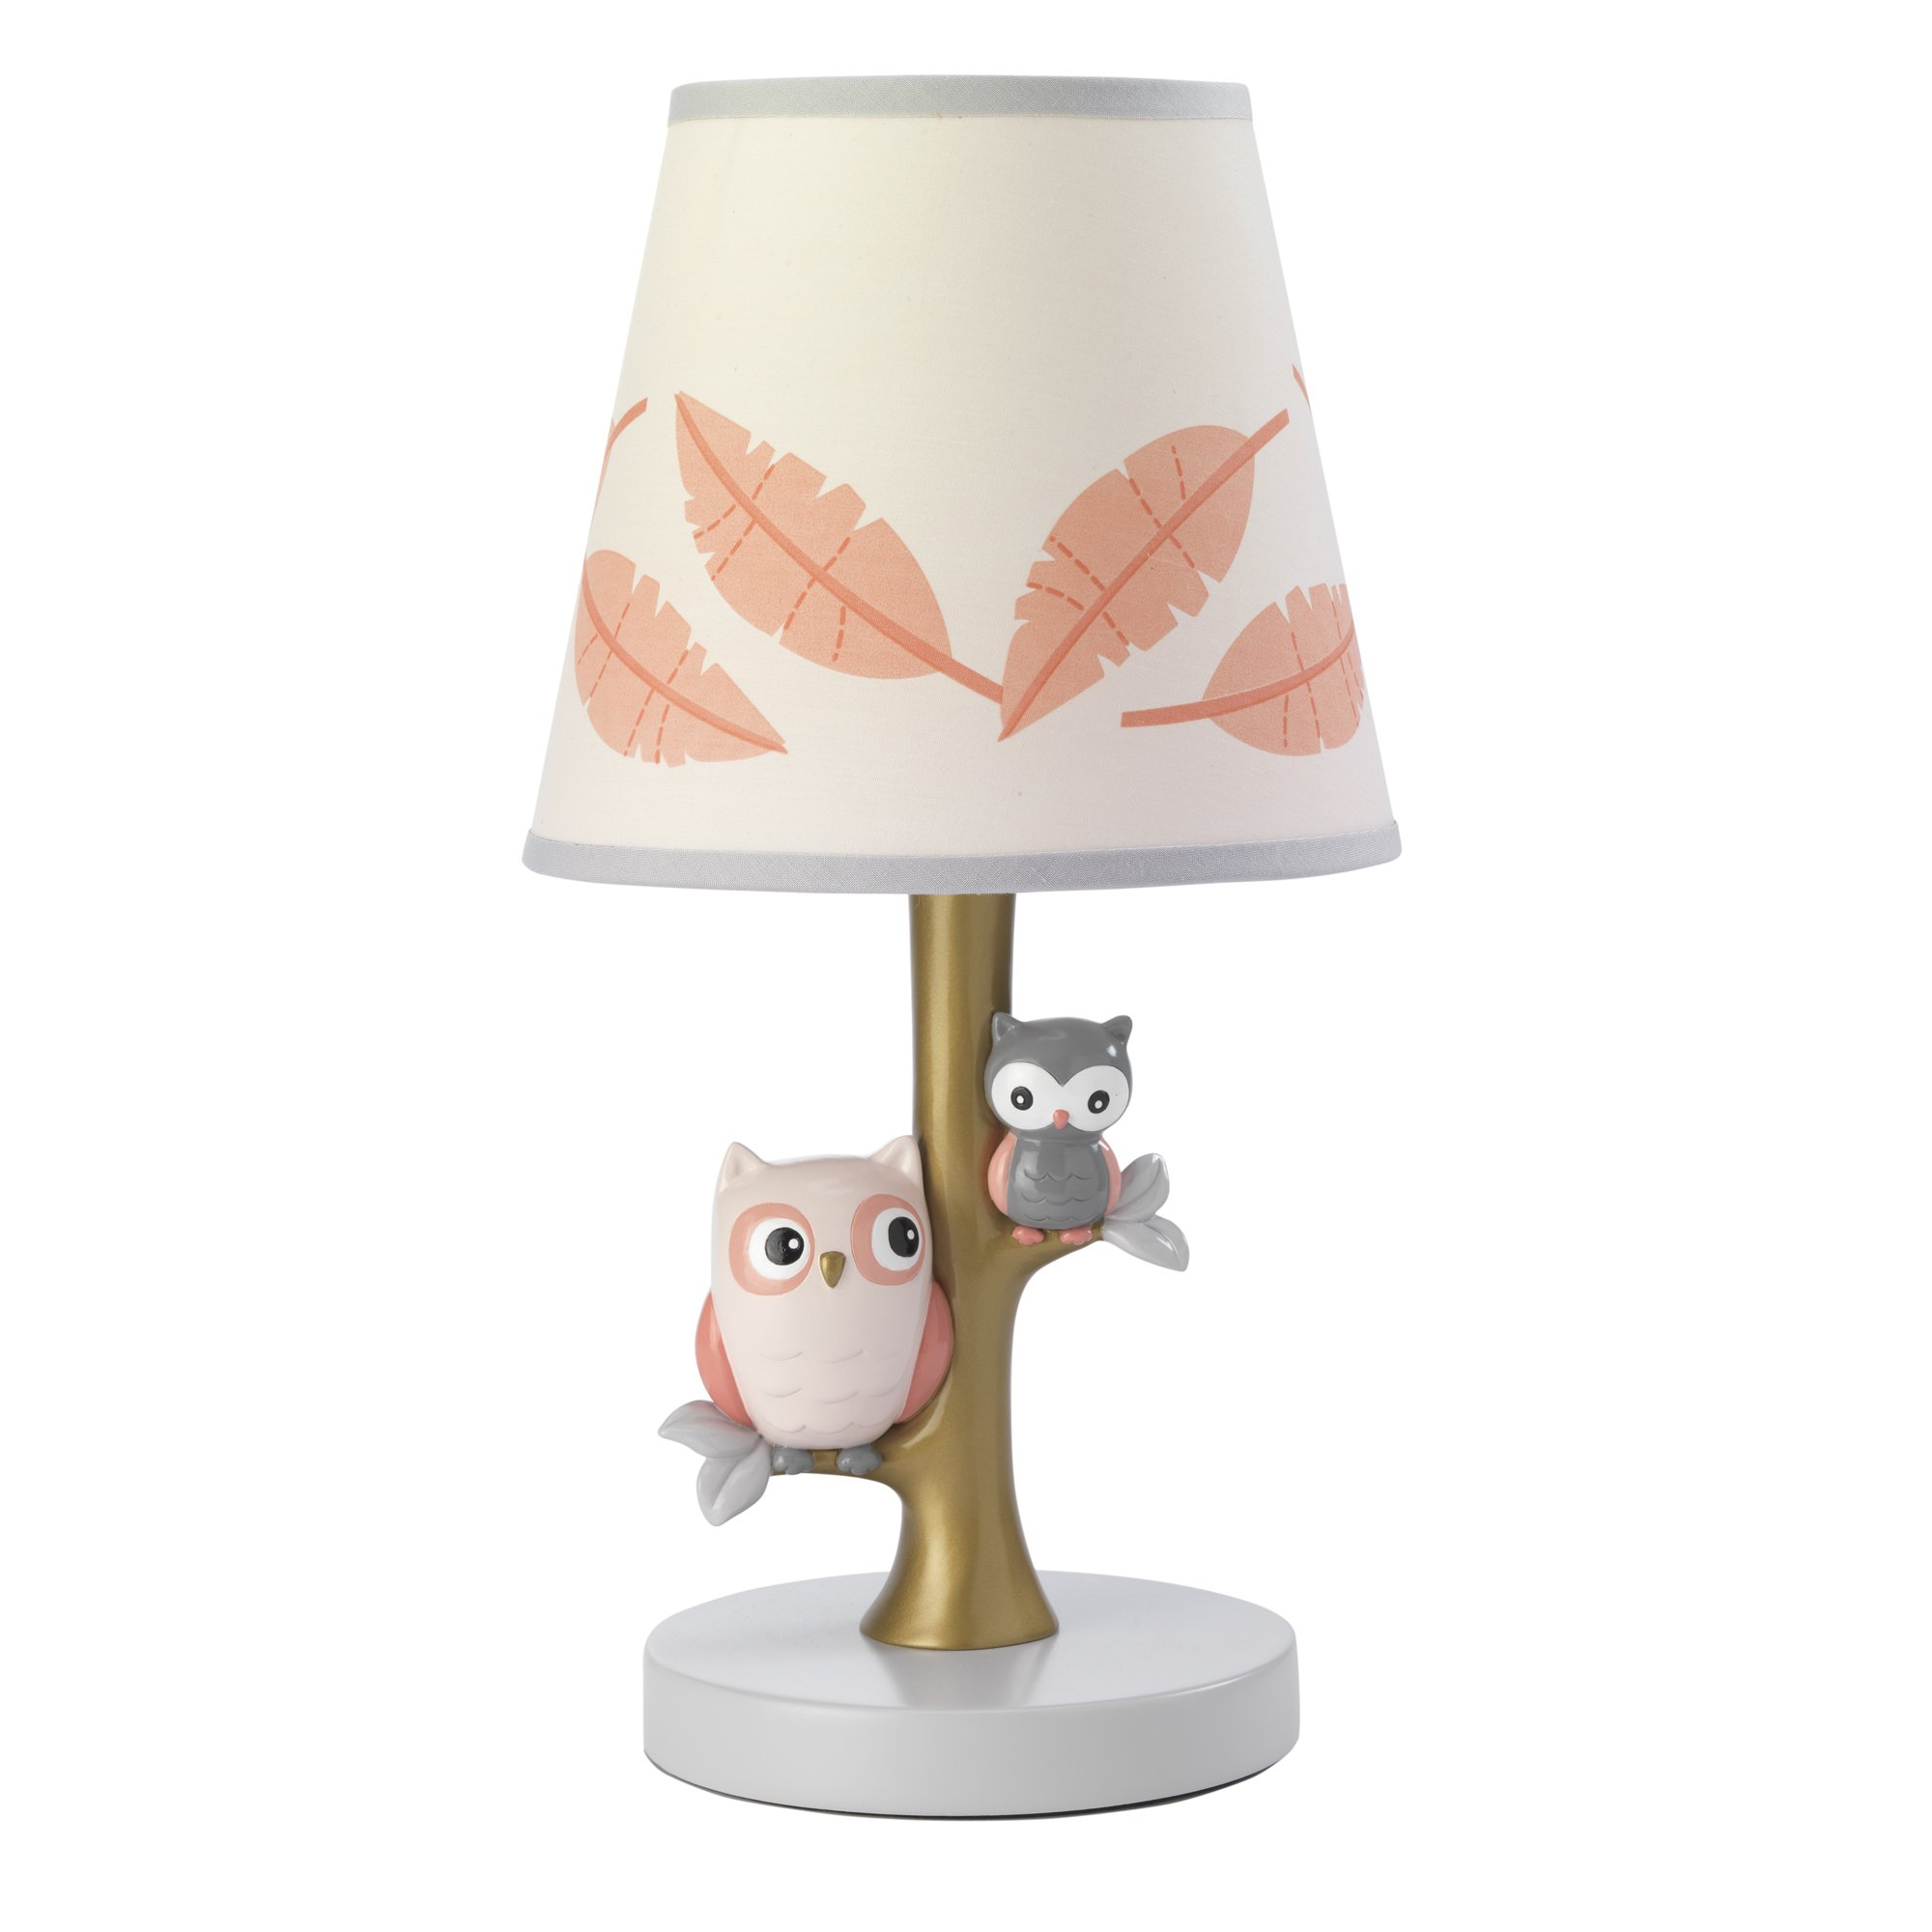 Lambs & Ivy Family Tree Coral/Gray/Gold Owl Lamp with Shade & Bulb by Lambs & Ivy